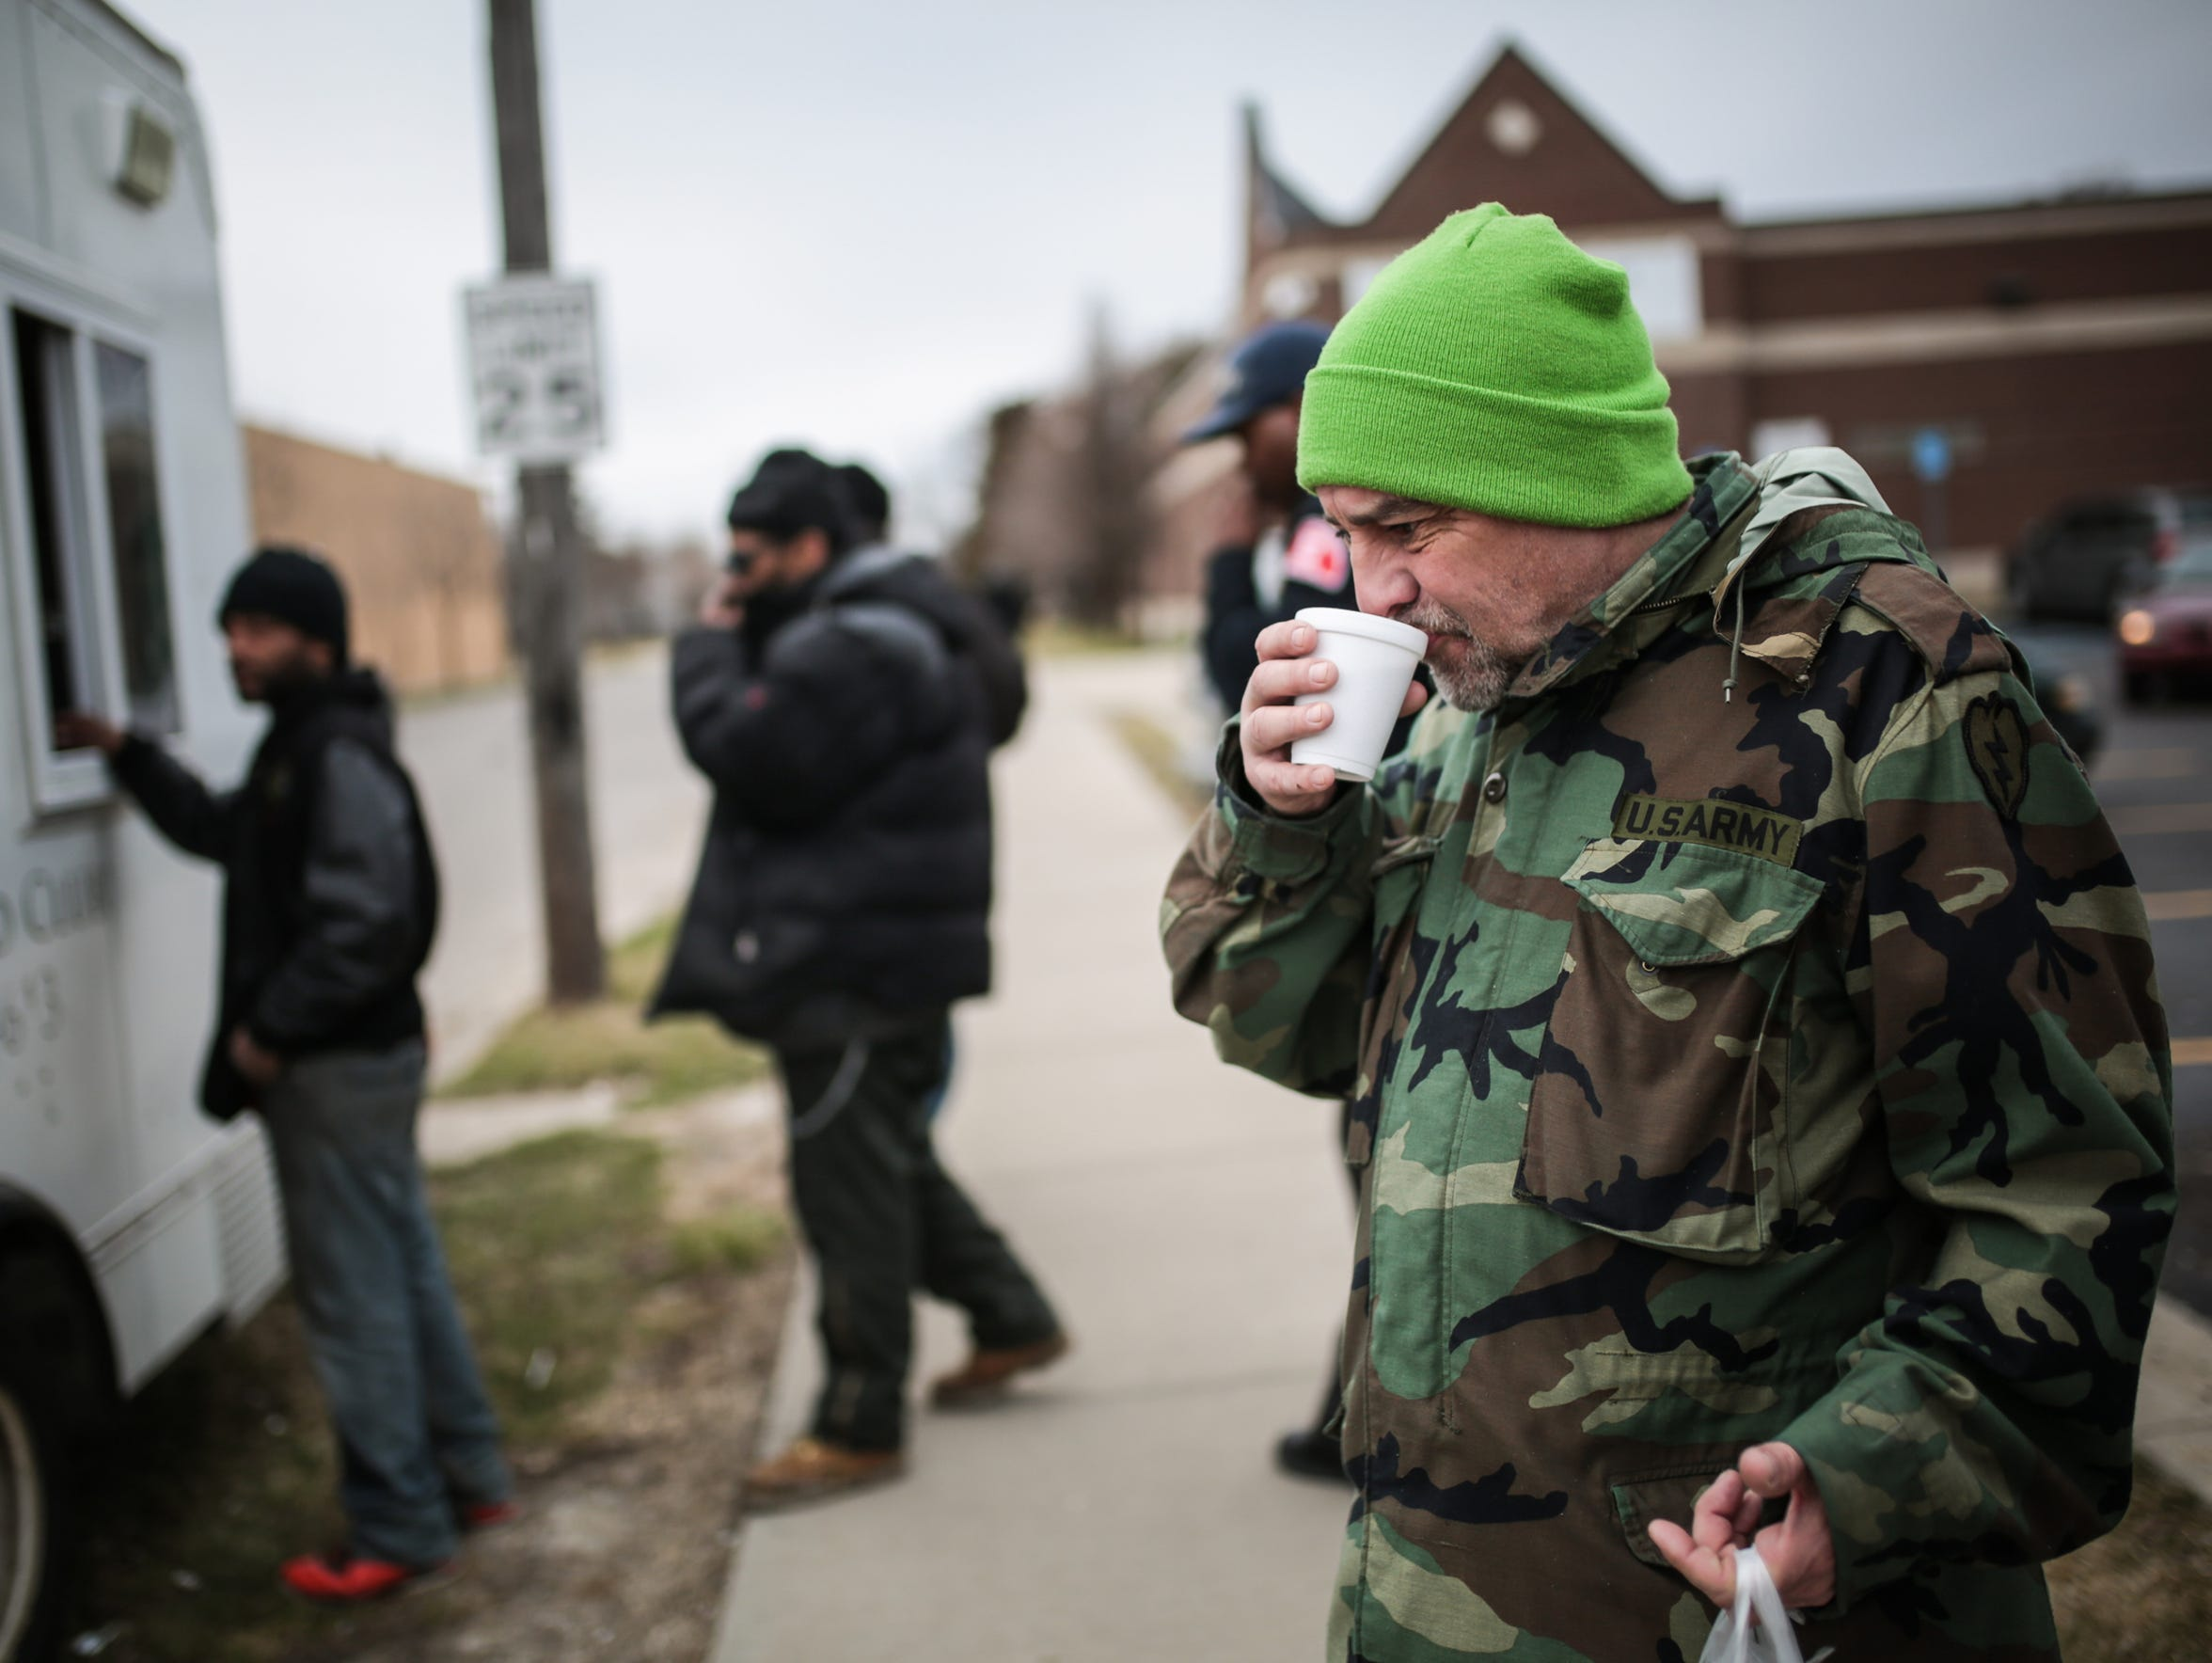 Michael Terrell, 58, of Detroit, drinks hot chocolate